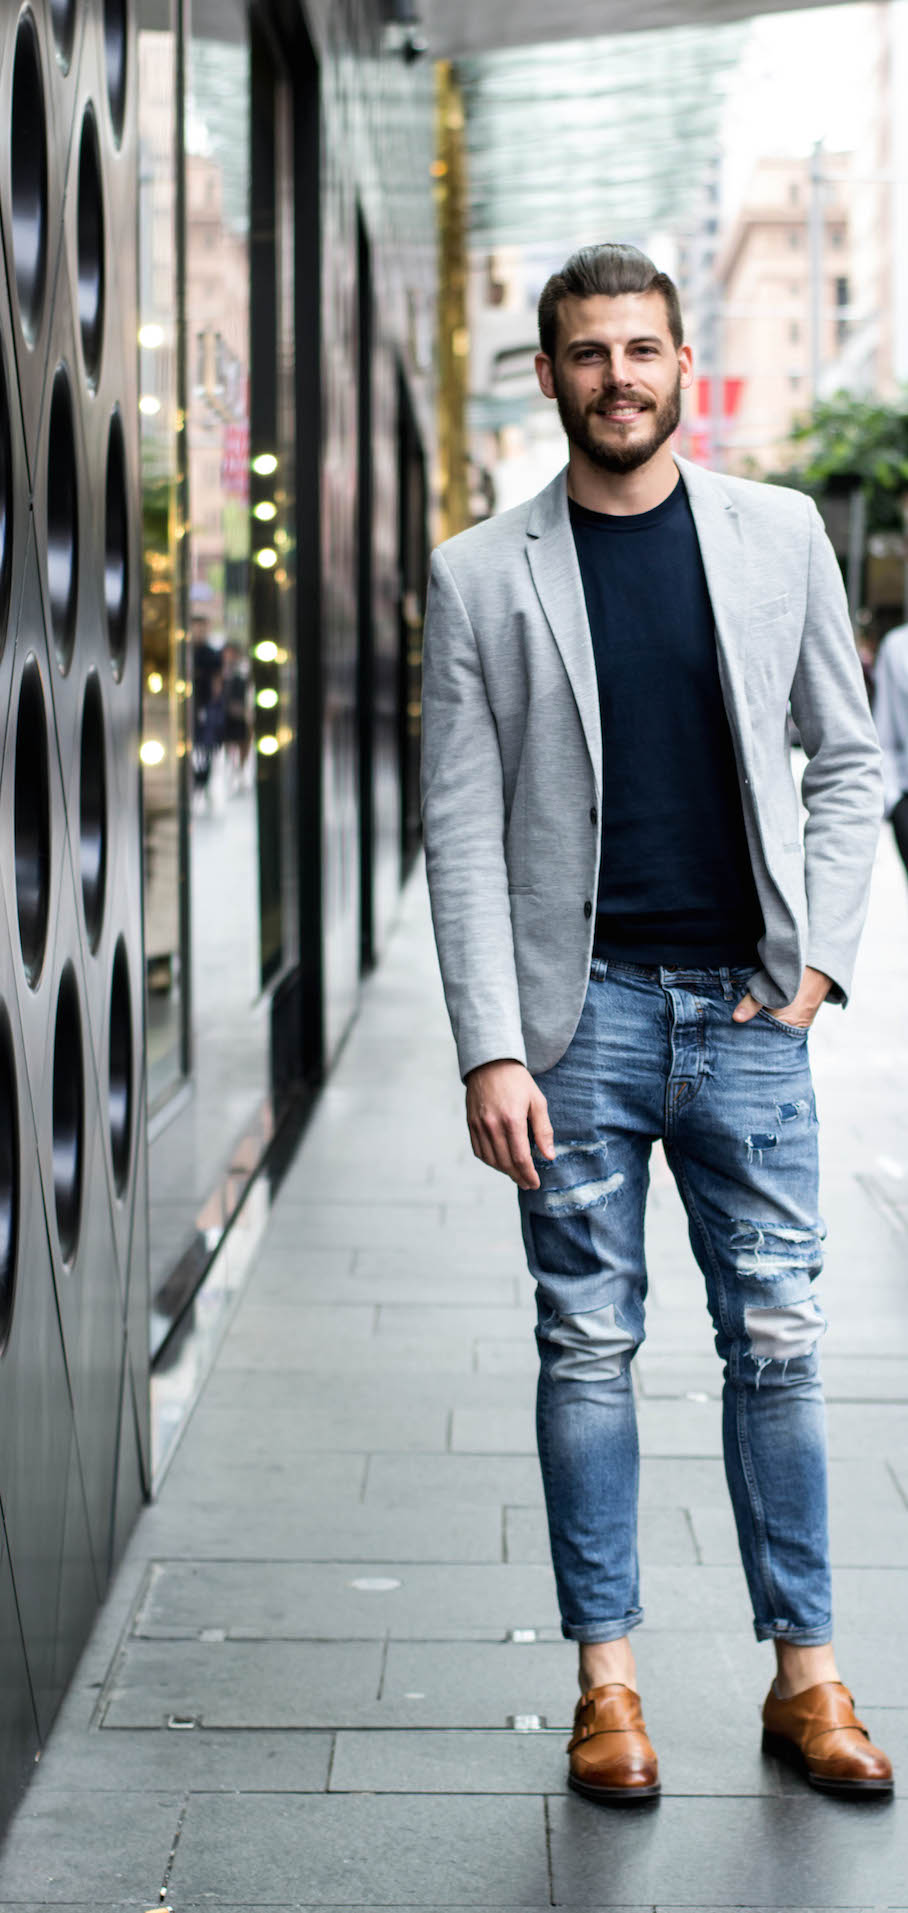 """NSW: Aaron Kuskopf, HR Manager, Sydney. """"My style is relaxed smart casual, comfortable and trend conscious."""" Photo: Alice Sciberras."""